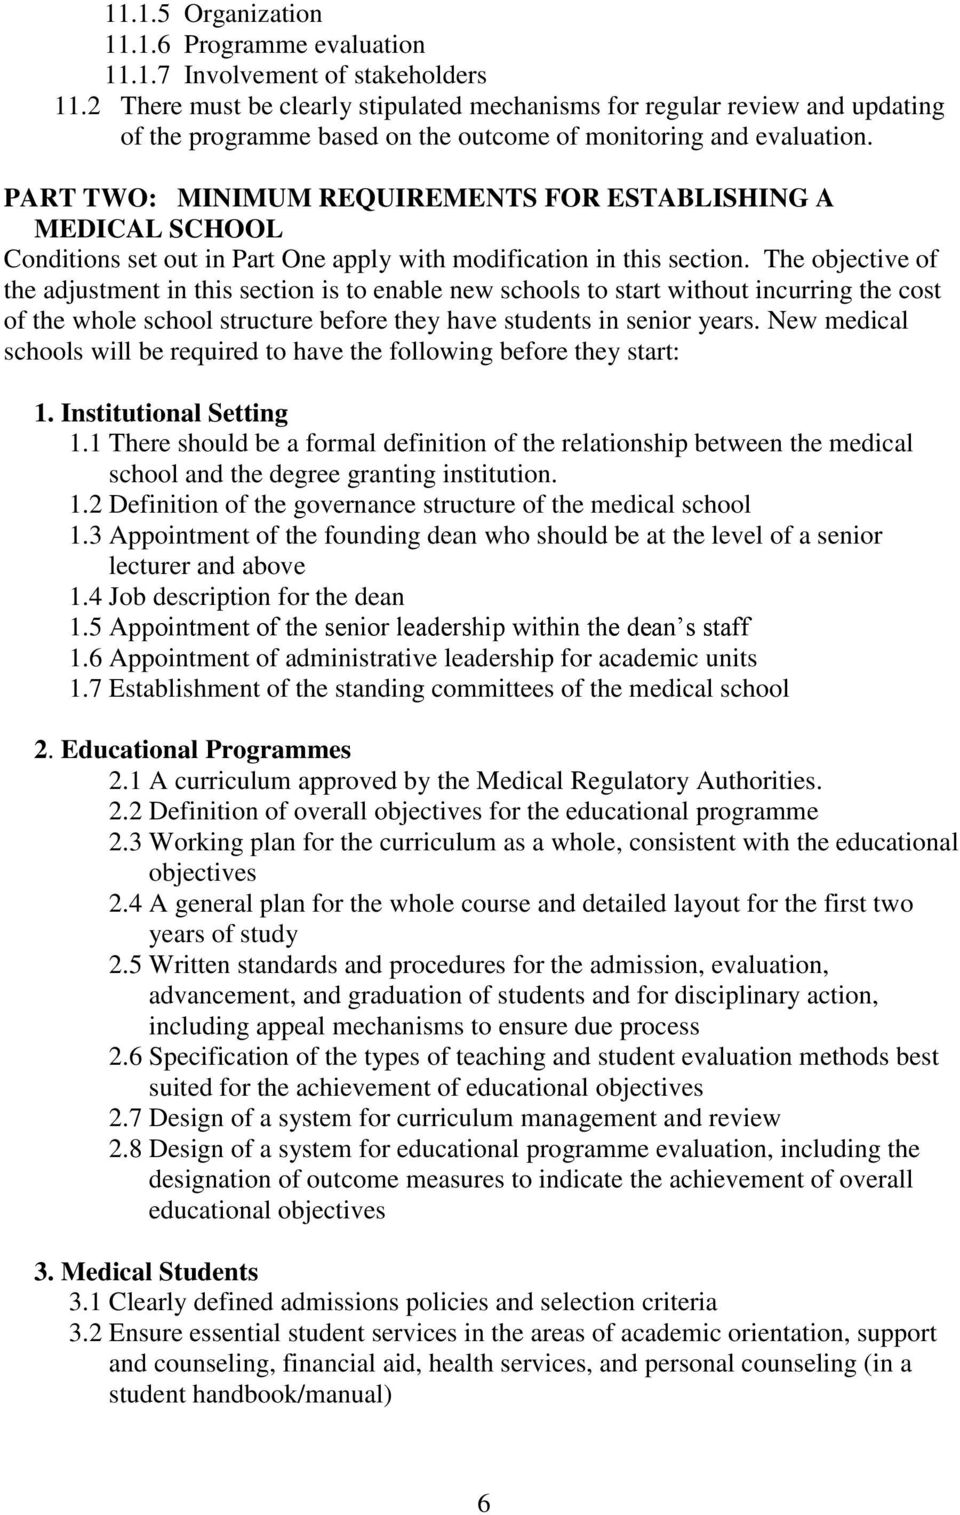 PART TWO: MINIMUM REQUIREMENTS FOR ESTABLISHING A MEDICAL SCHOOL Conditions set out in Part One apply with modification in this section.